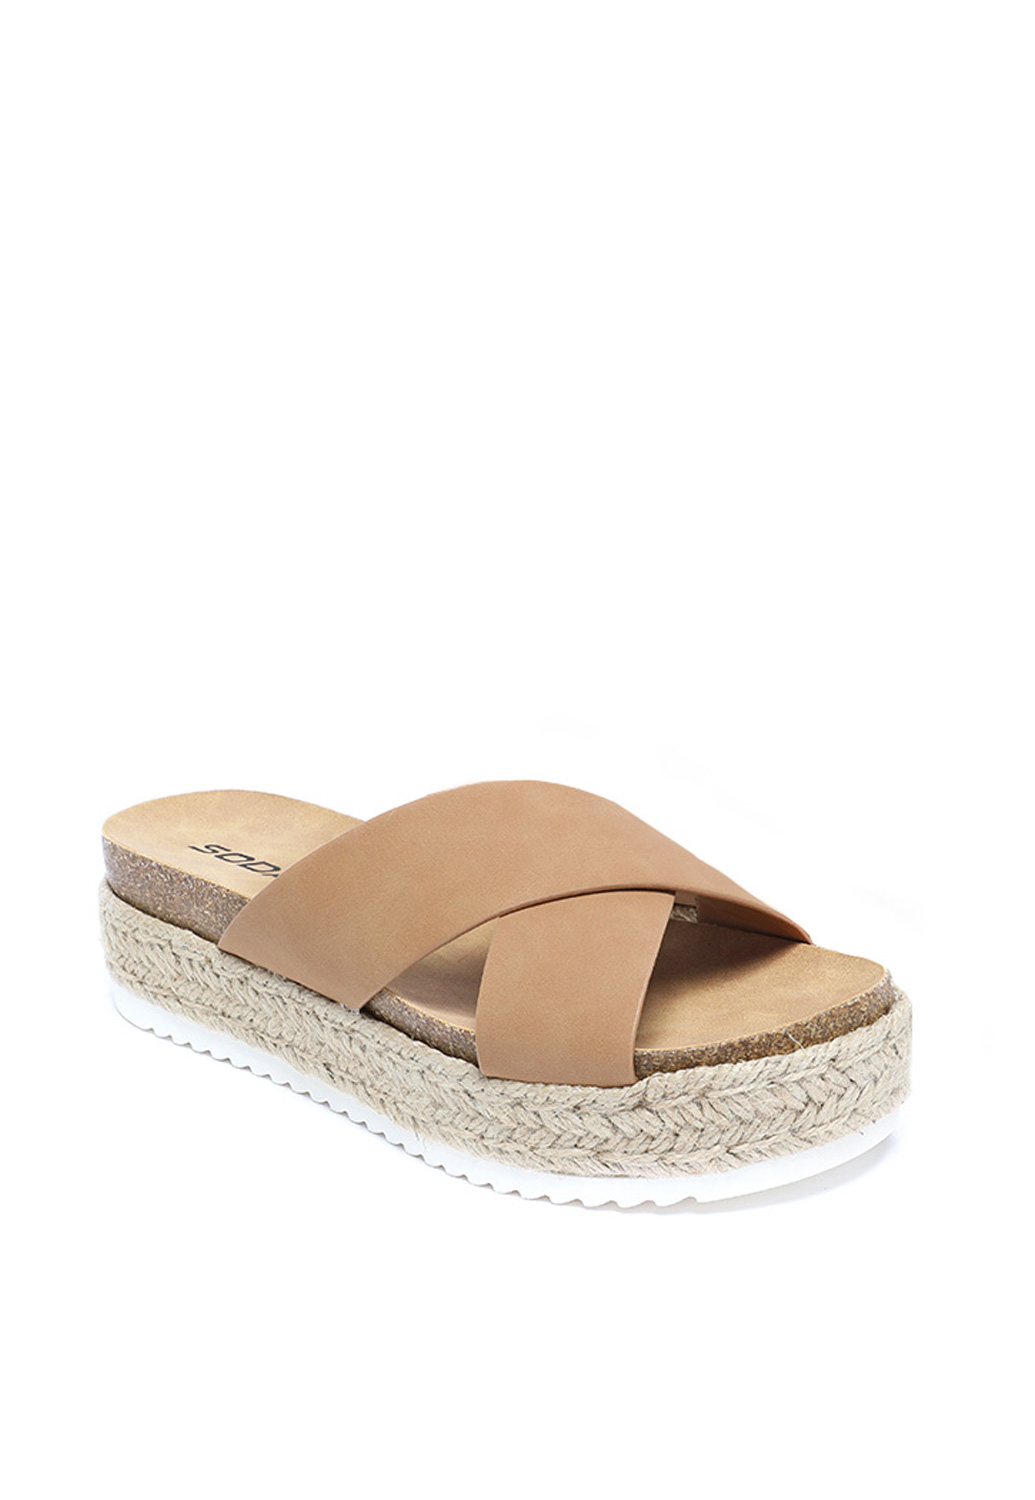 Wedge Slide Sandals